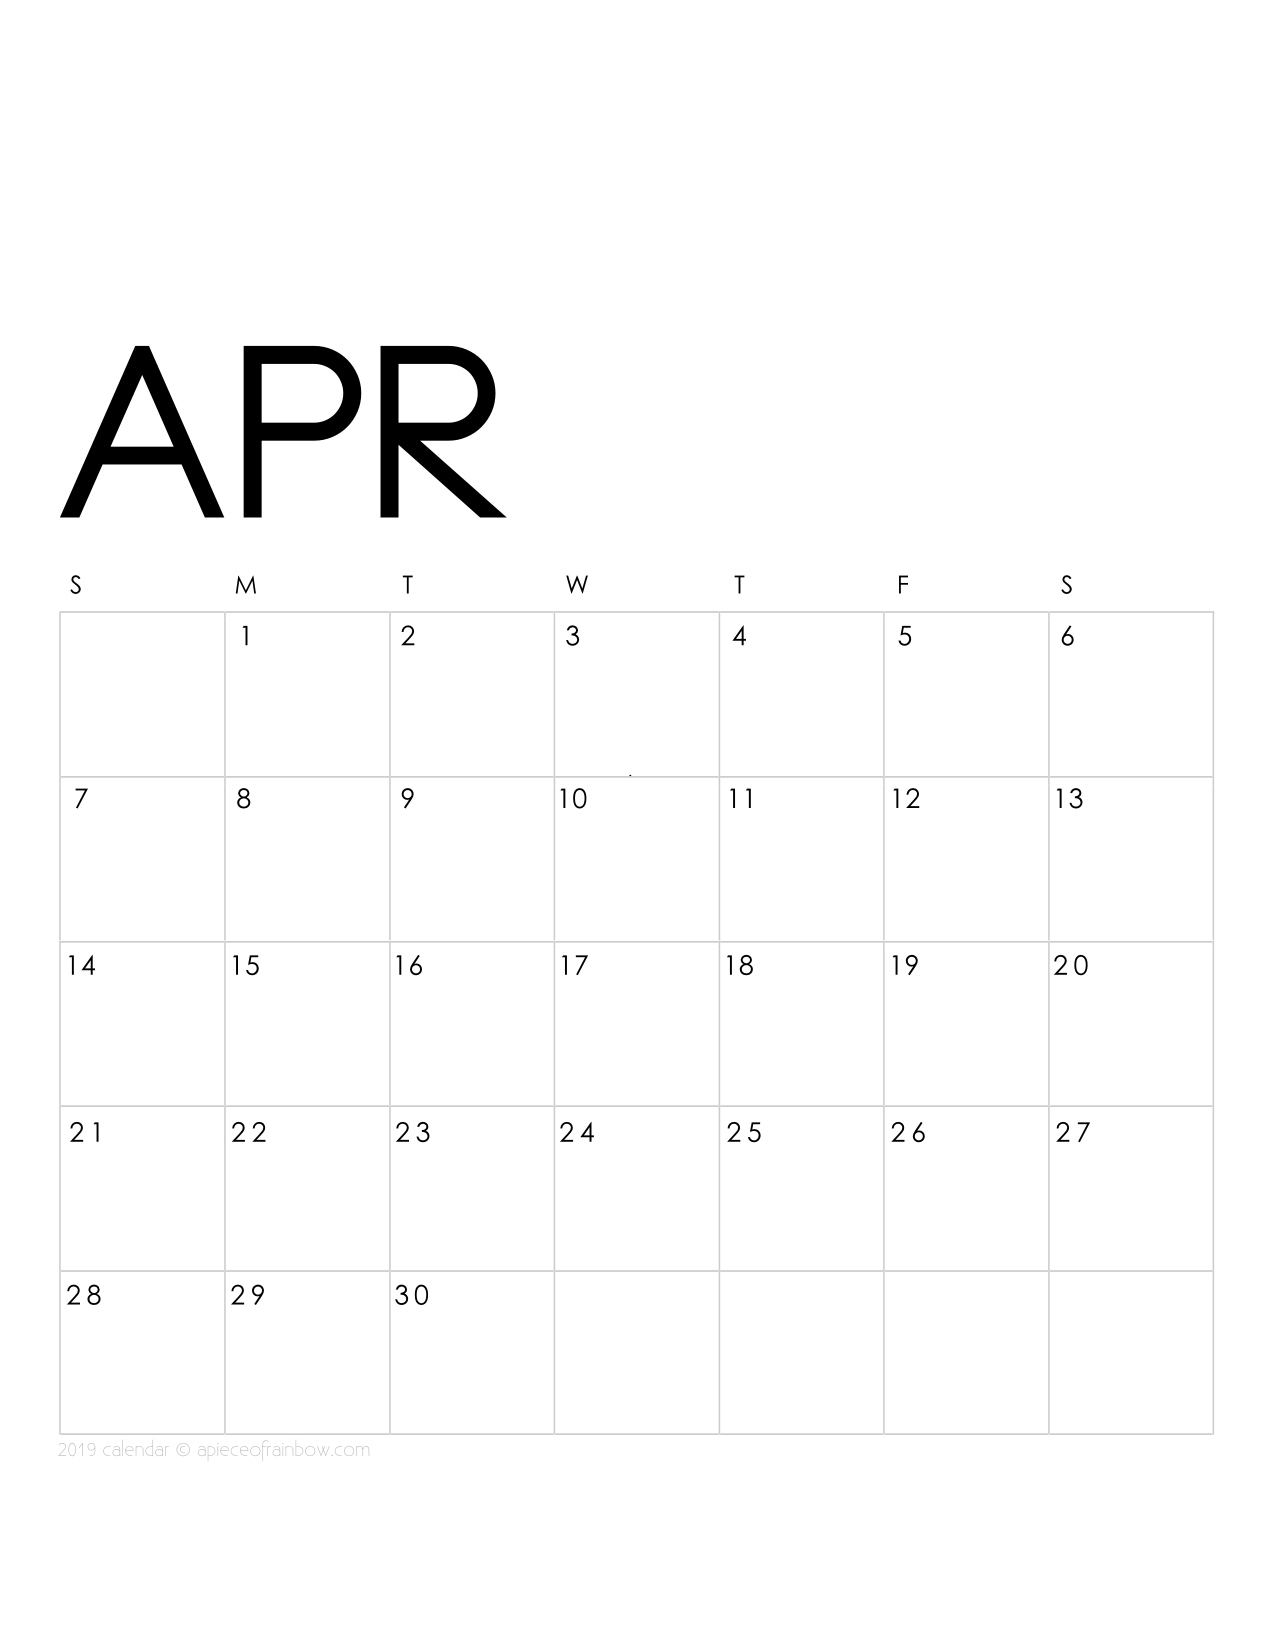 Trust image pertaining to april calender printable